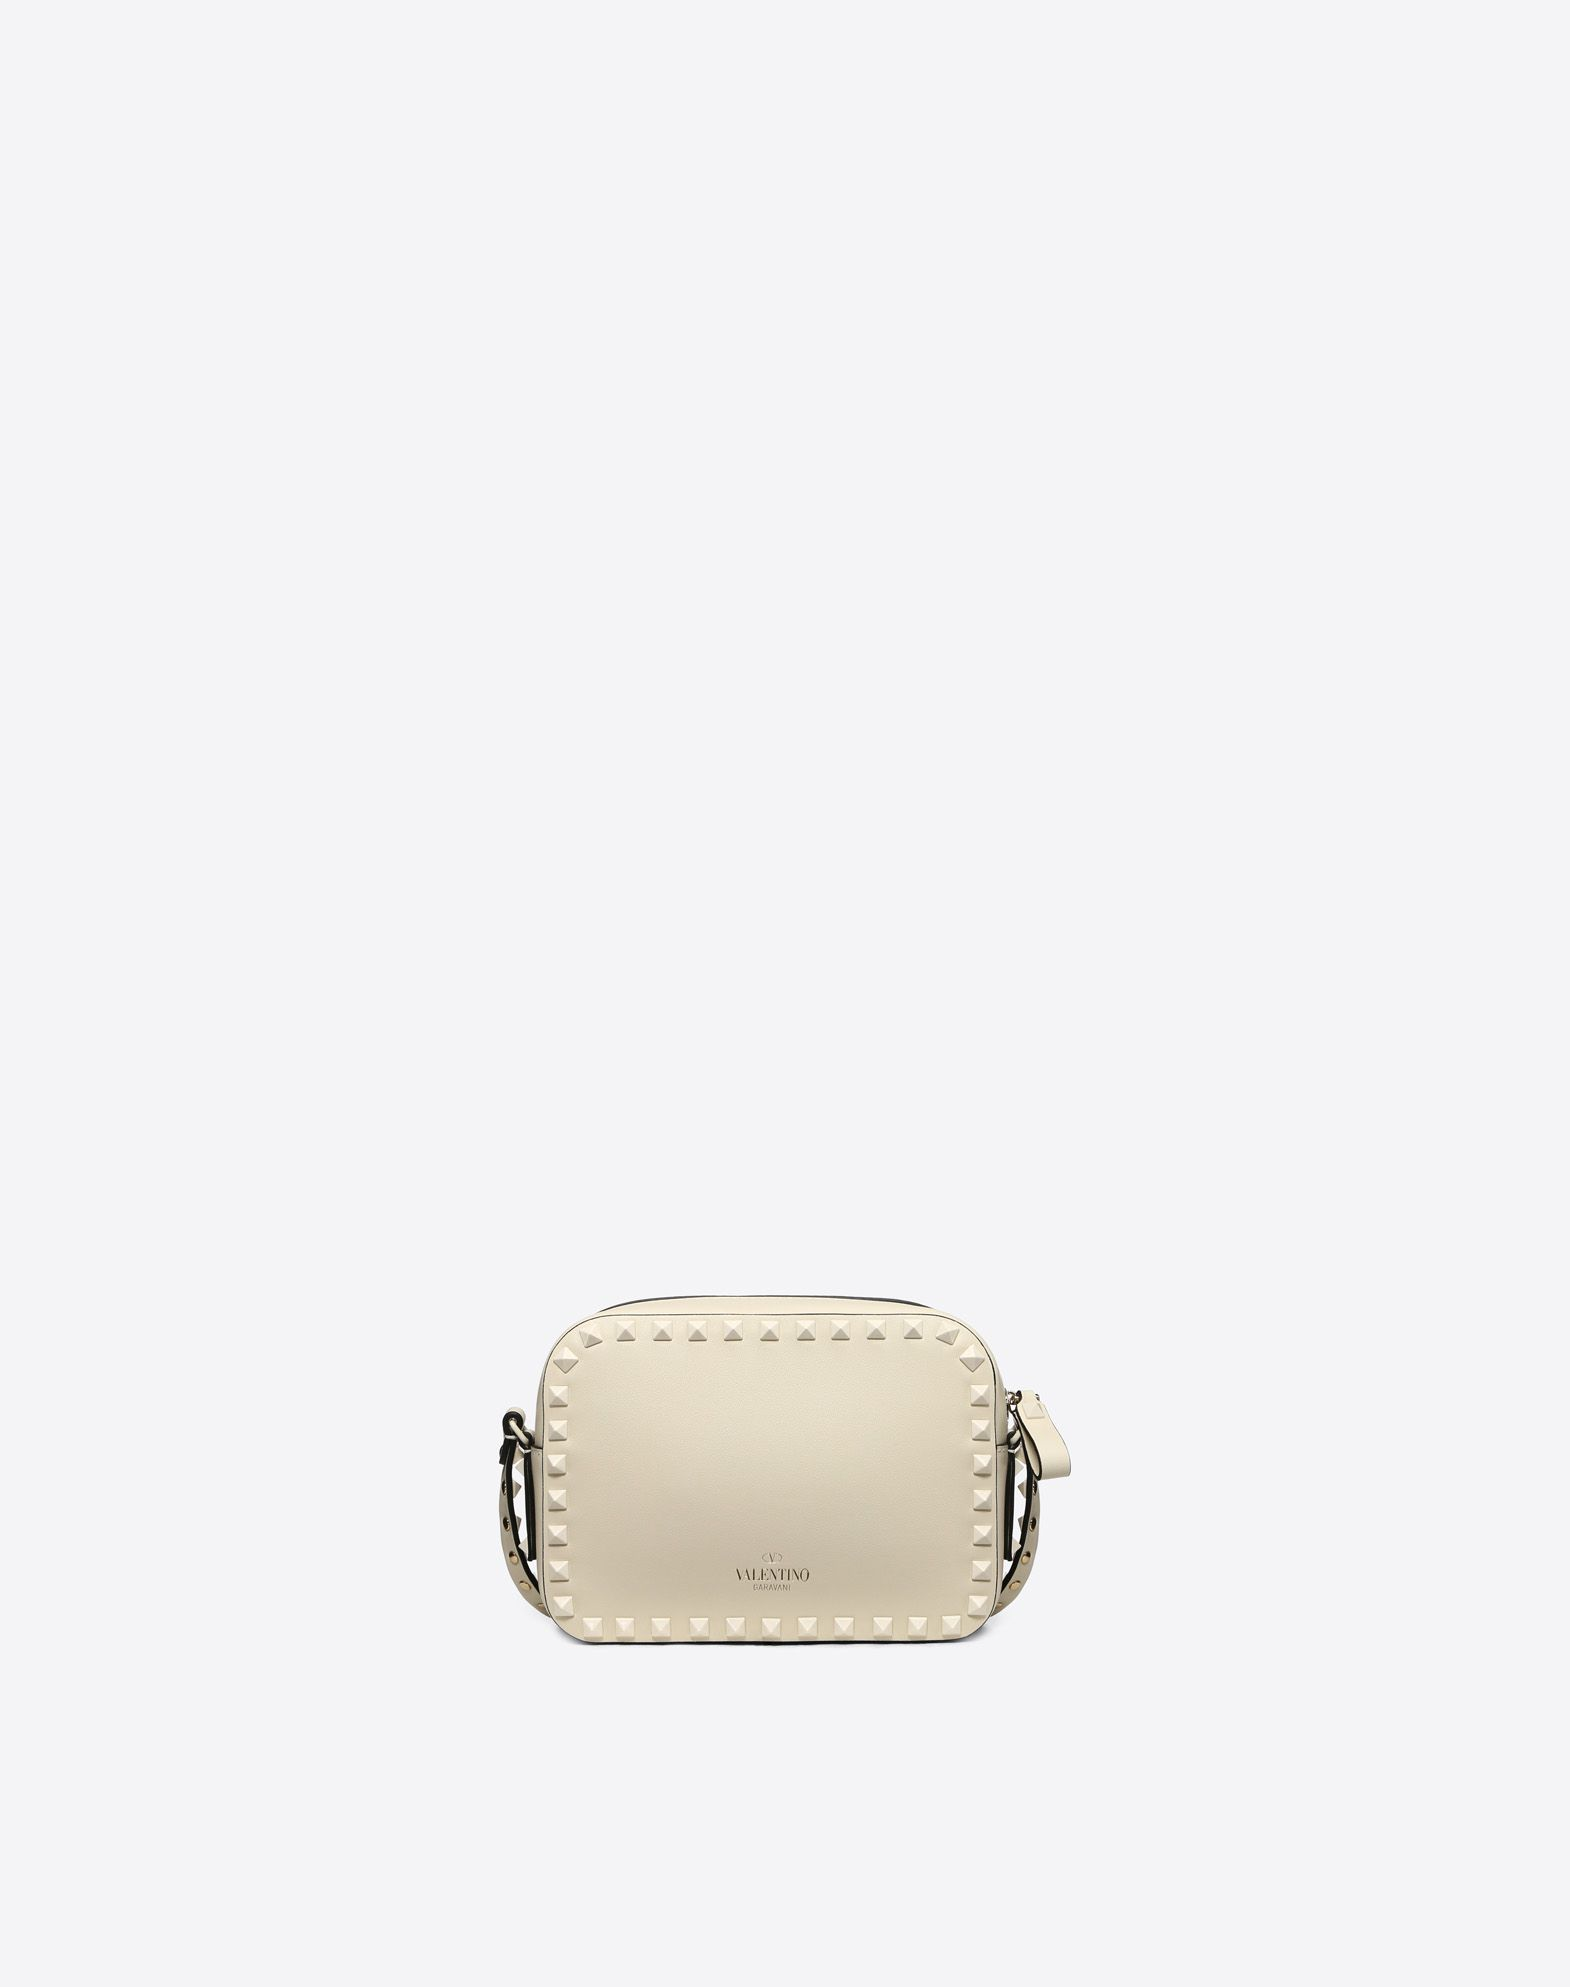 VALENTINO GARAVANI Rockstud Cross-body Bag CROSS BODY BAG D d